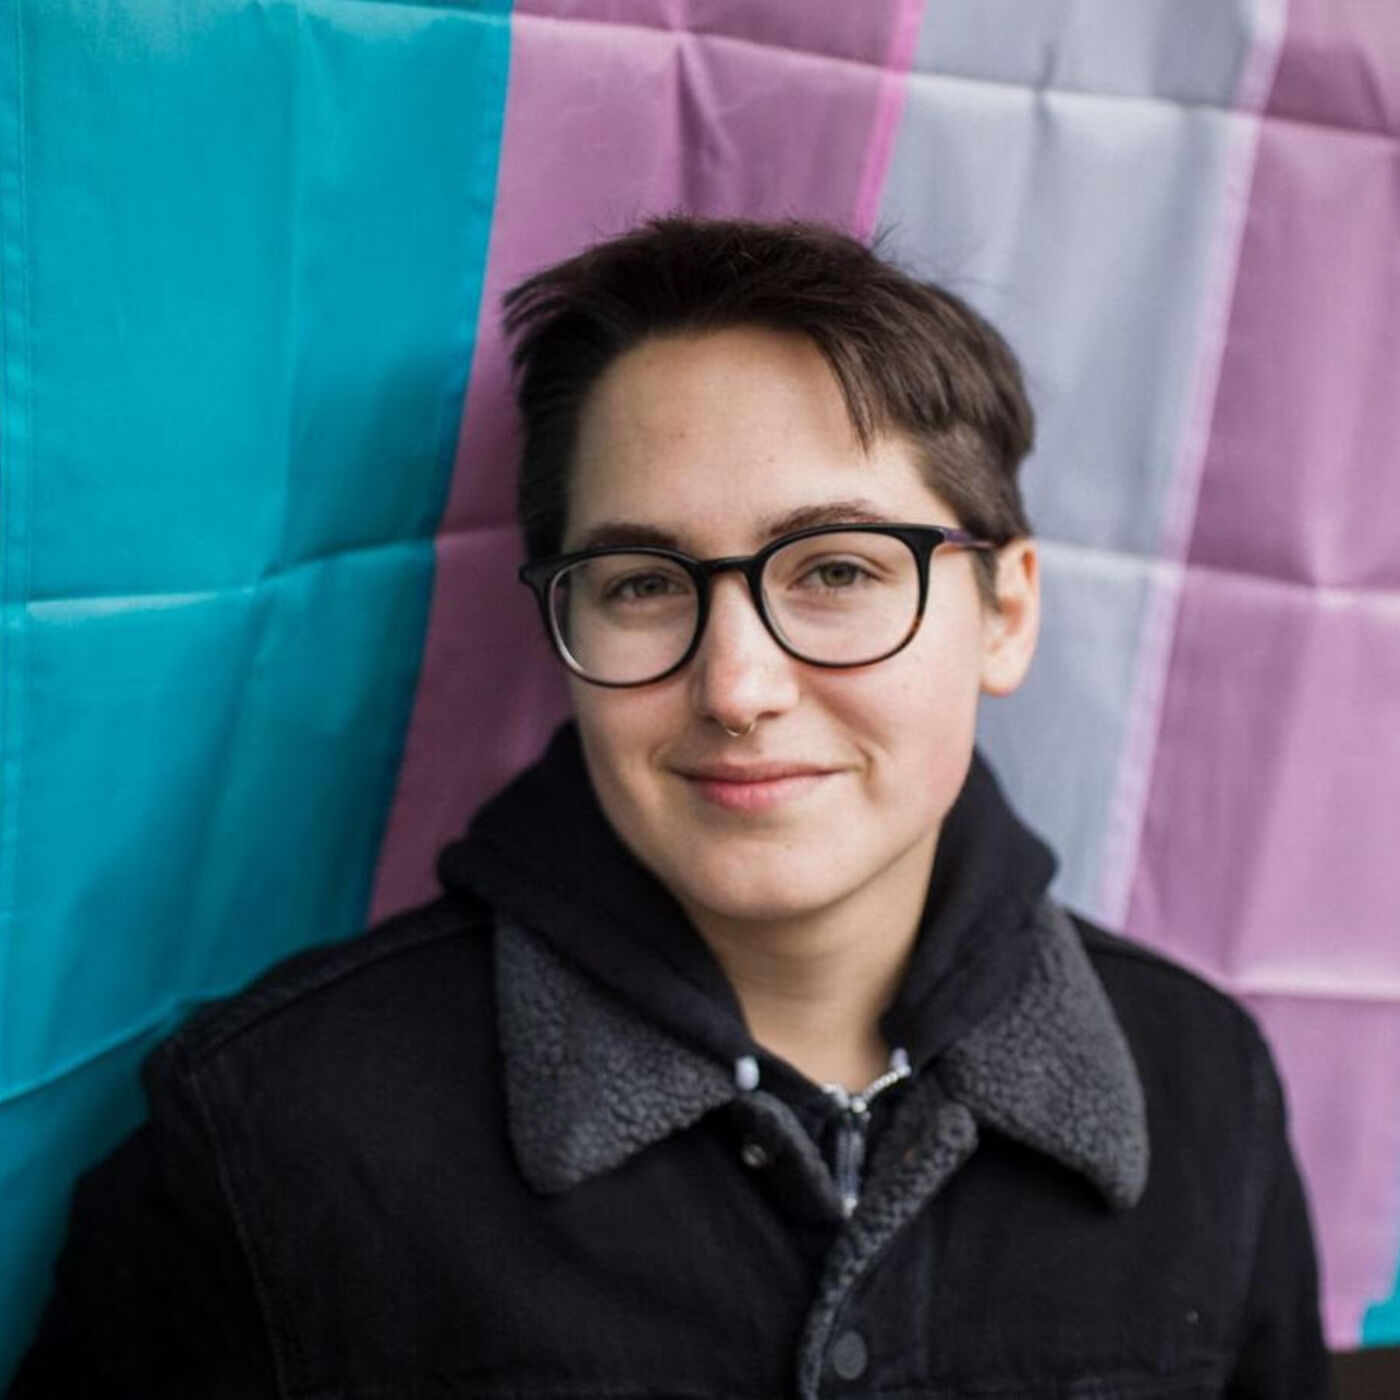 Gender Stories meets Gender Reveal: a conversation with Molly Woodstock